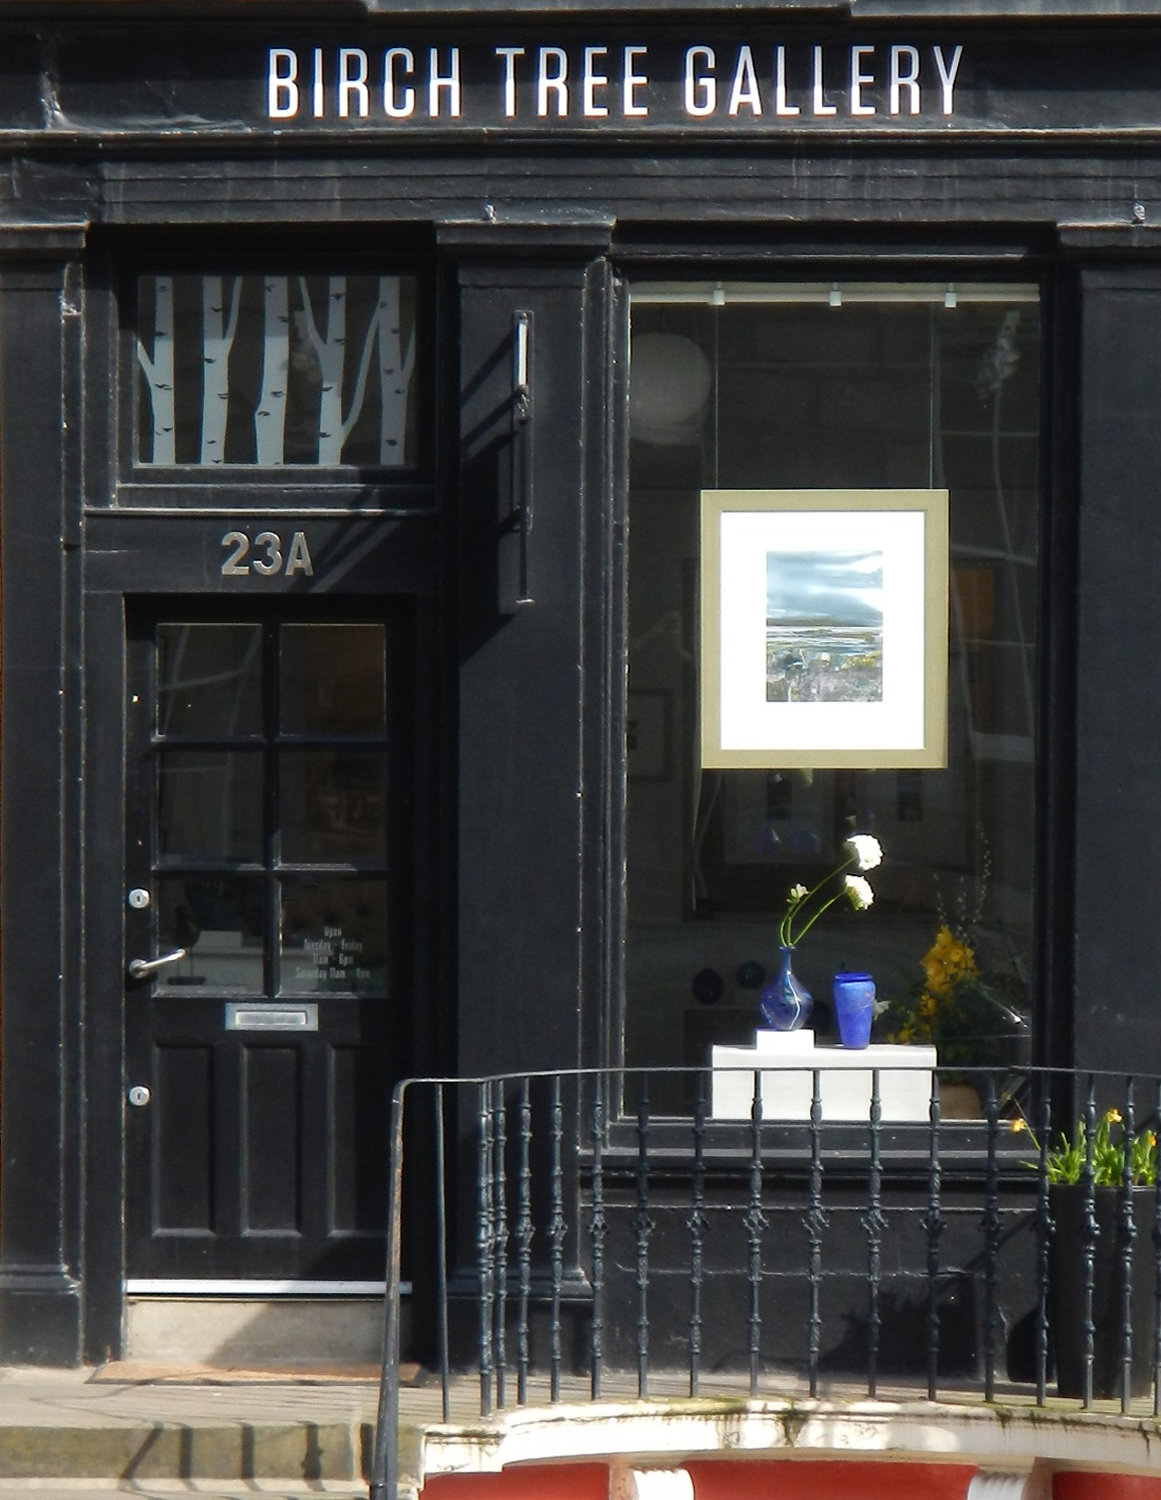 Birch Tree Gallery, 23A Dundas Street, Edinburgh, EH36QQ